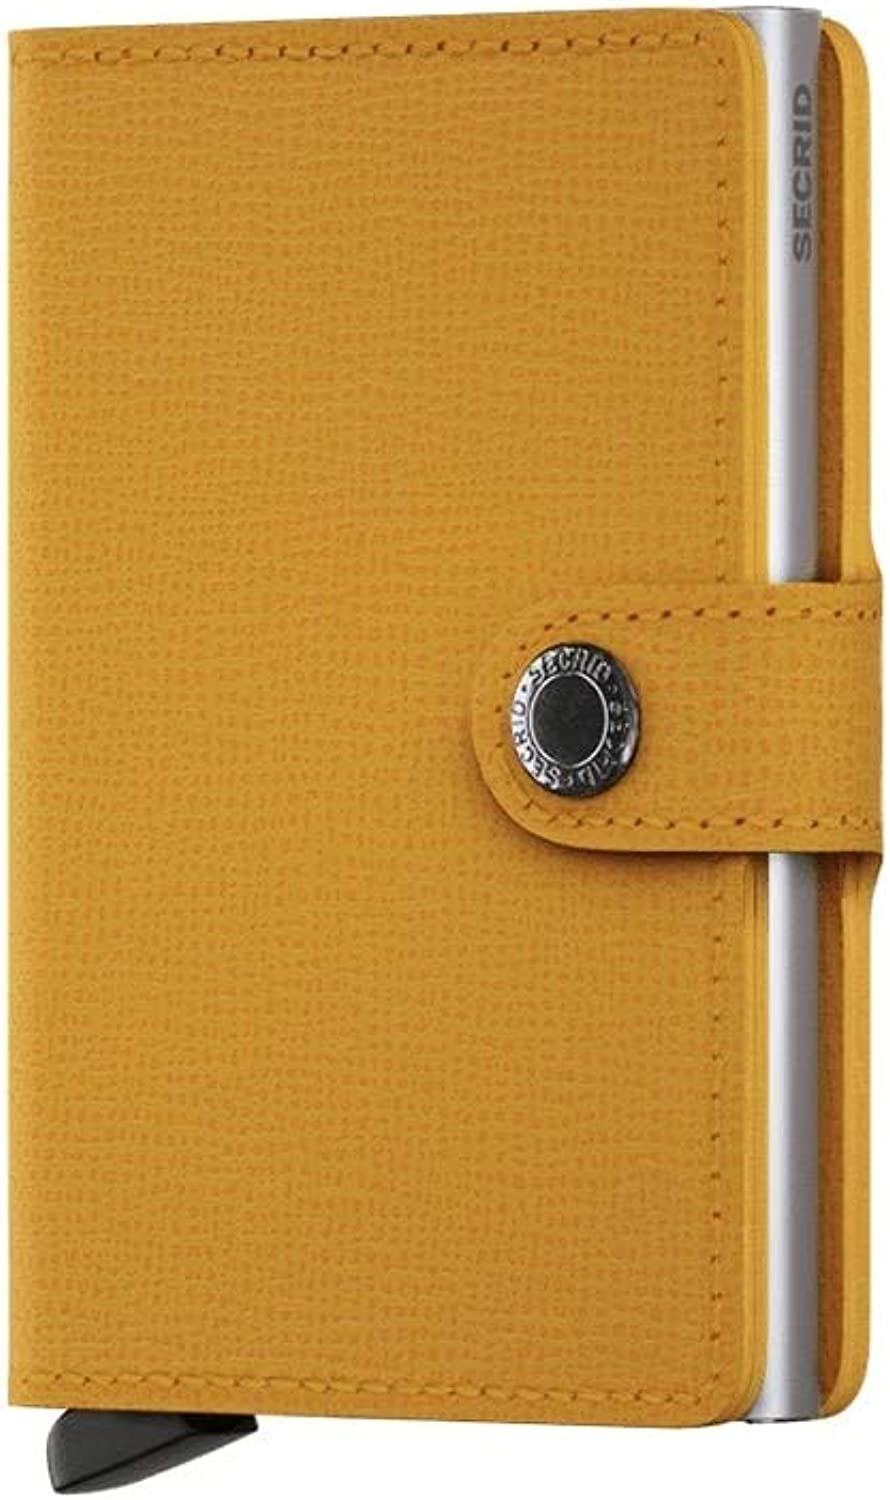 Secrid Mini Wallet Leather Amber Crisple SC5274